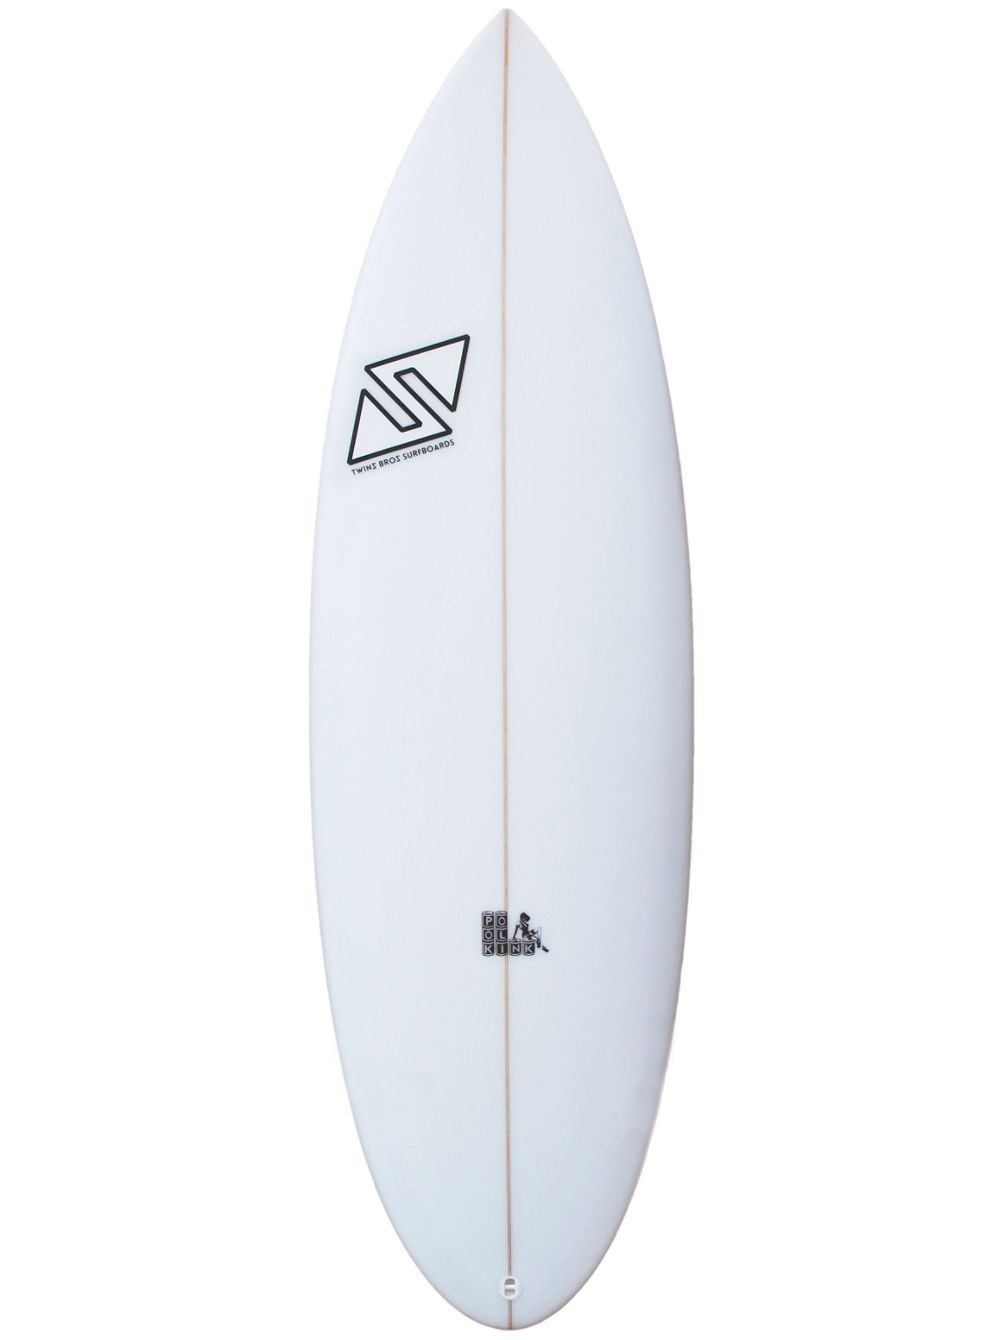 Pool Kink PU FCS2 6'4 Surfboard